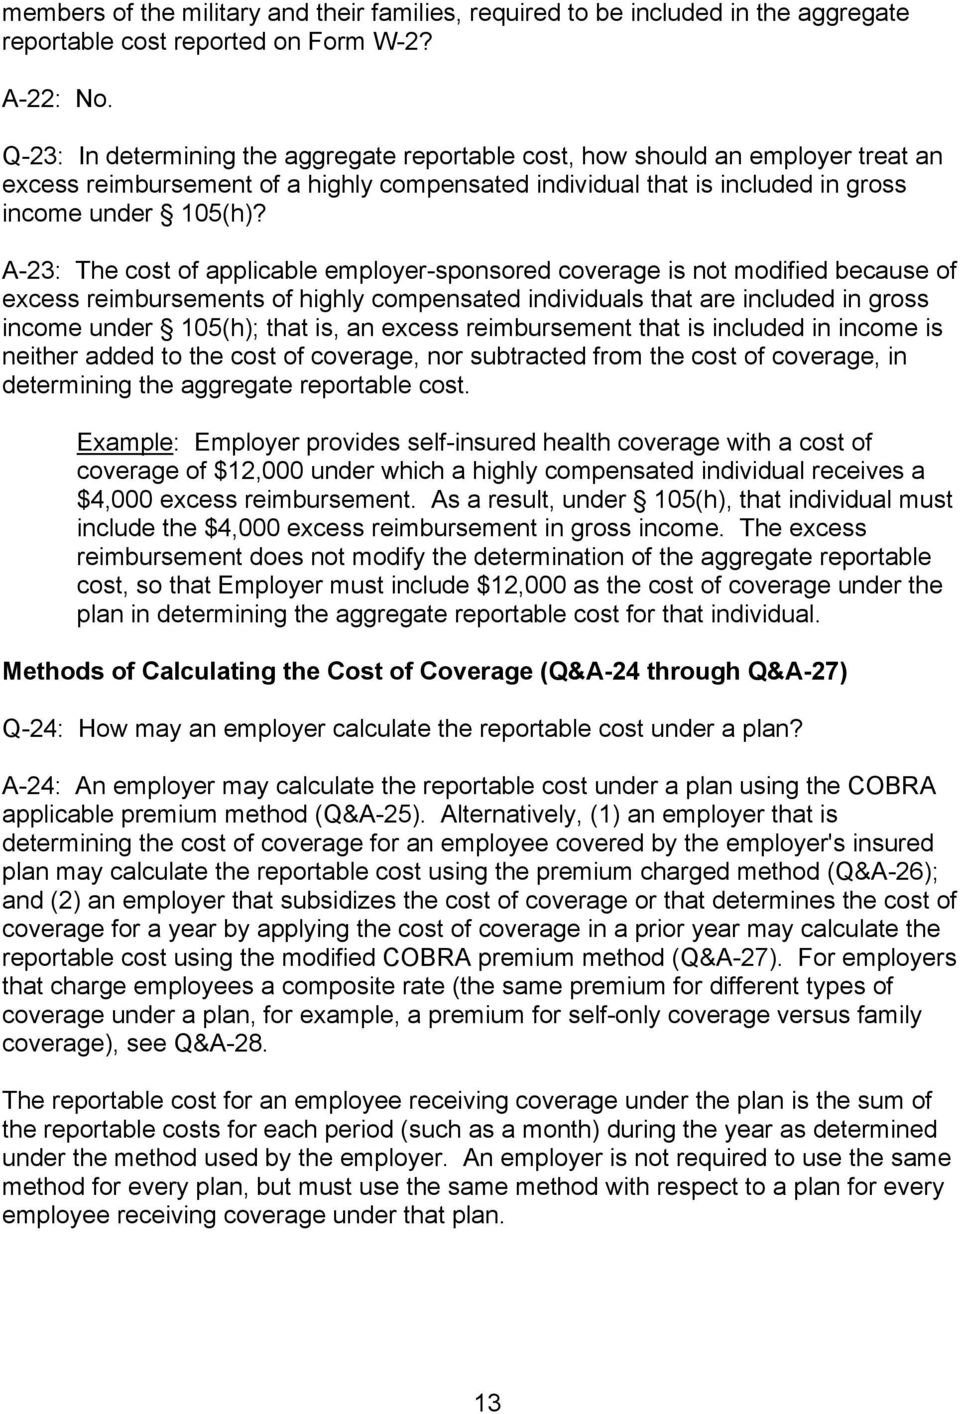 A-23: The cost of applicable employer-sponsored coverage is not modified because of excess reimbursements of highly compensated individuals that are included in gross income under 105(h); that is, an